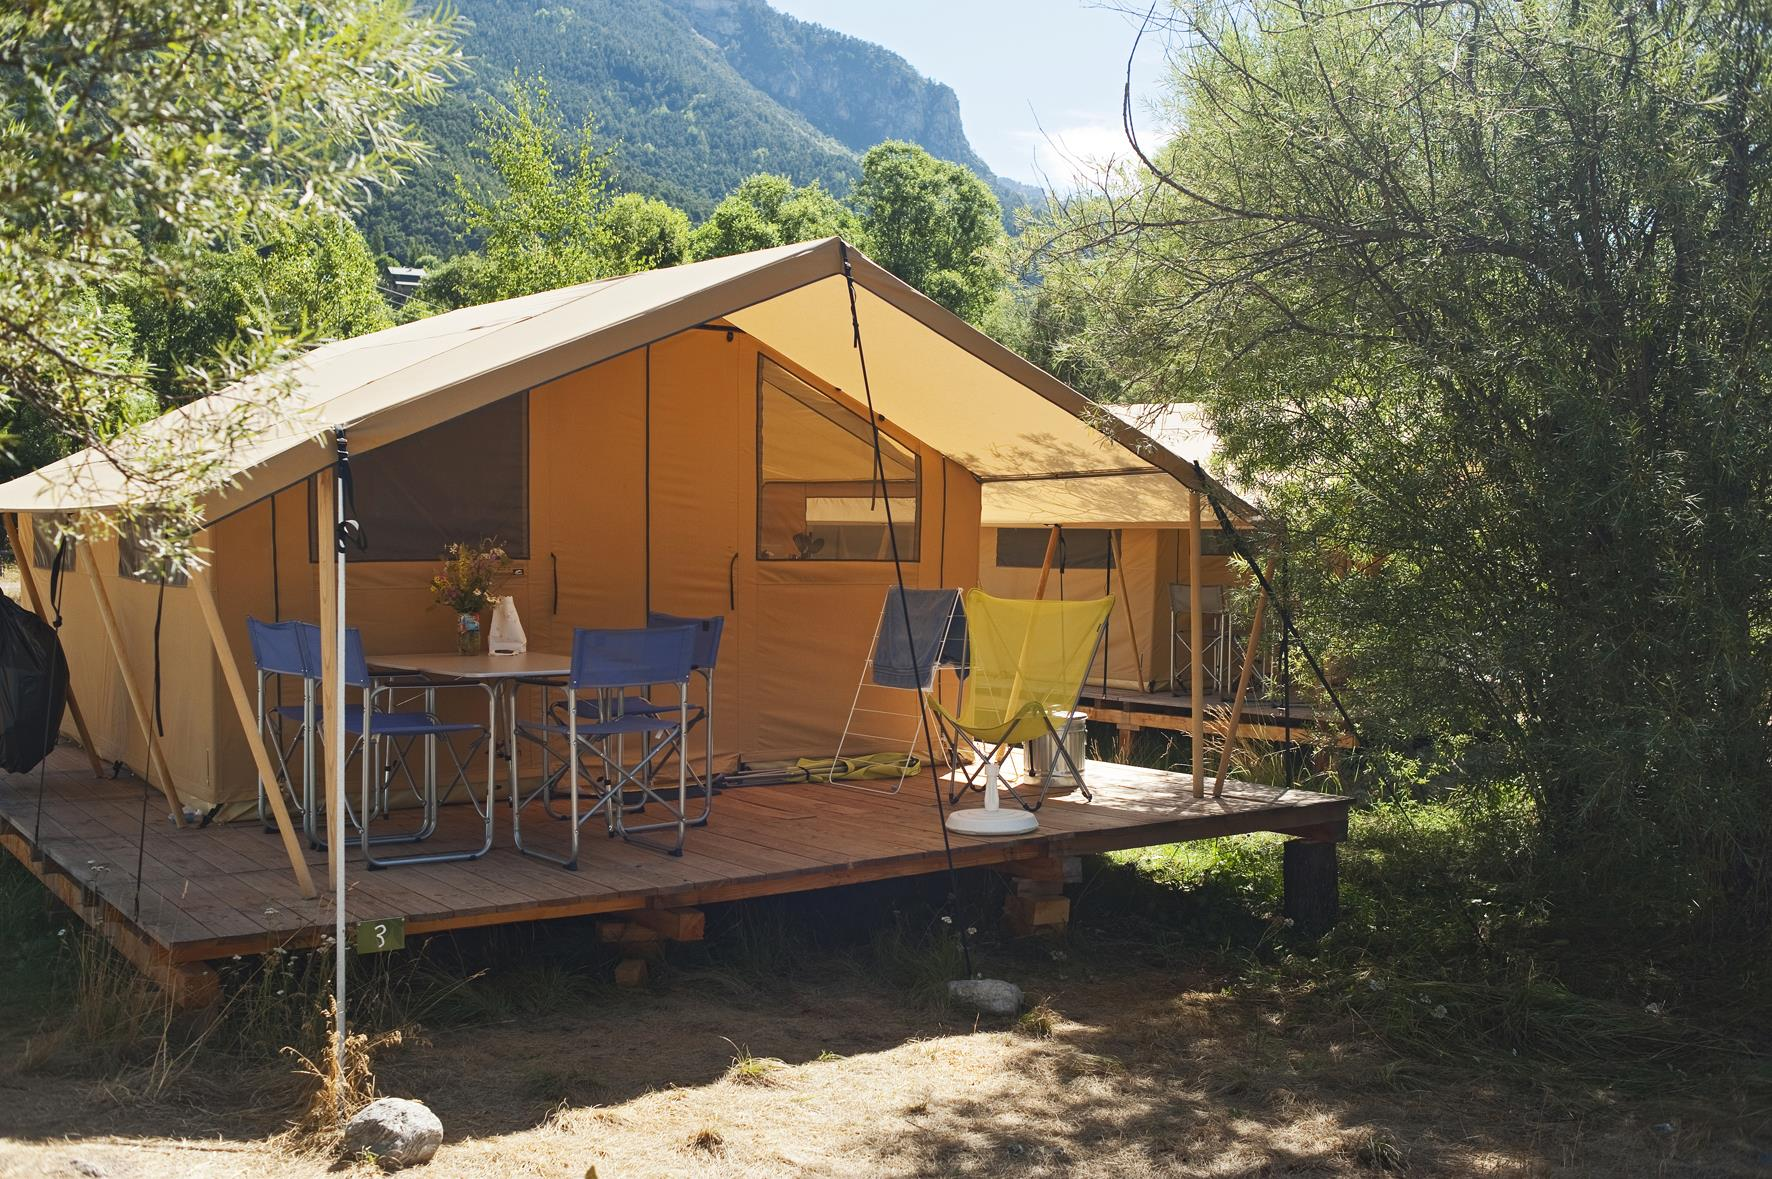 Camping Huttopia Vallouise, Vallouise, Hautes-Alpes